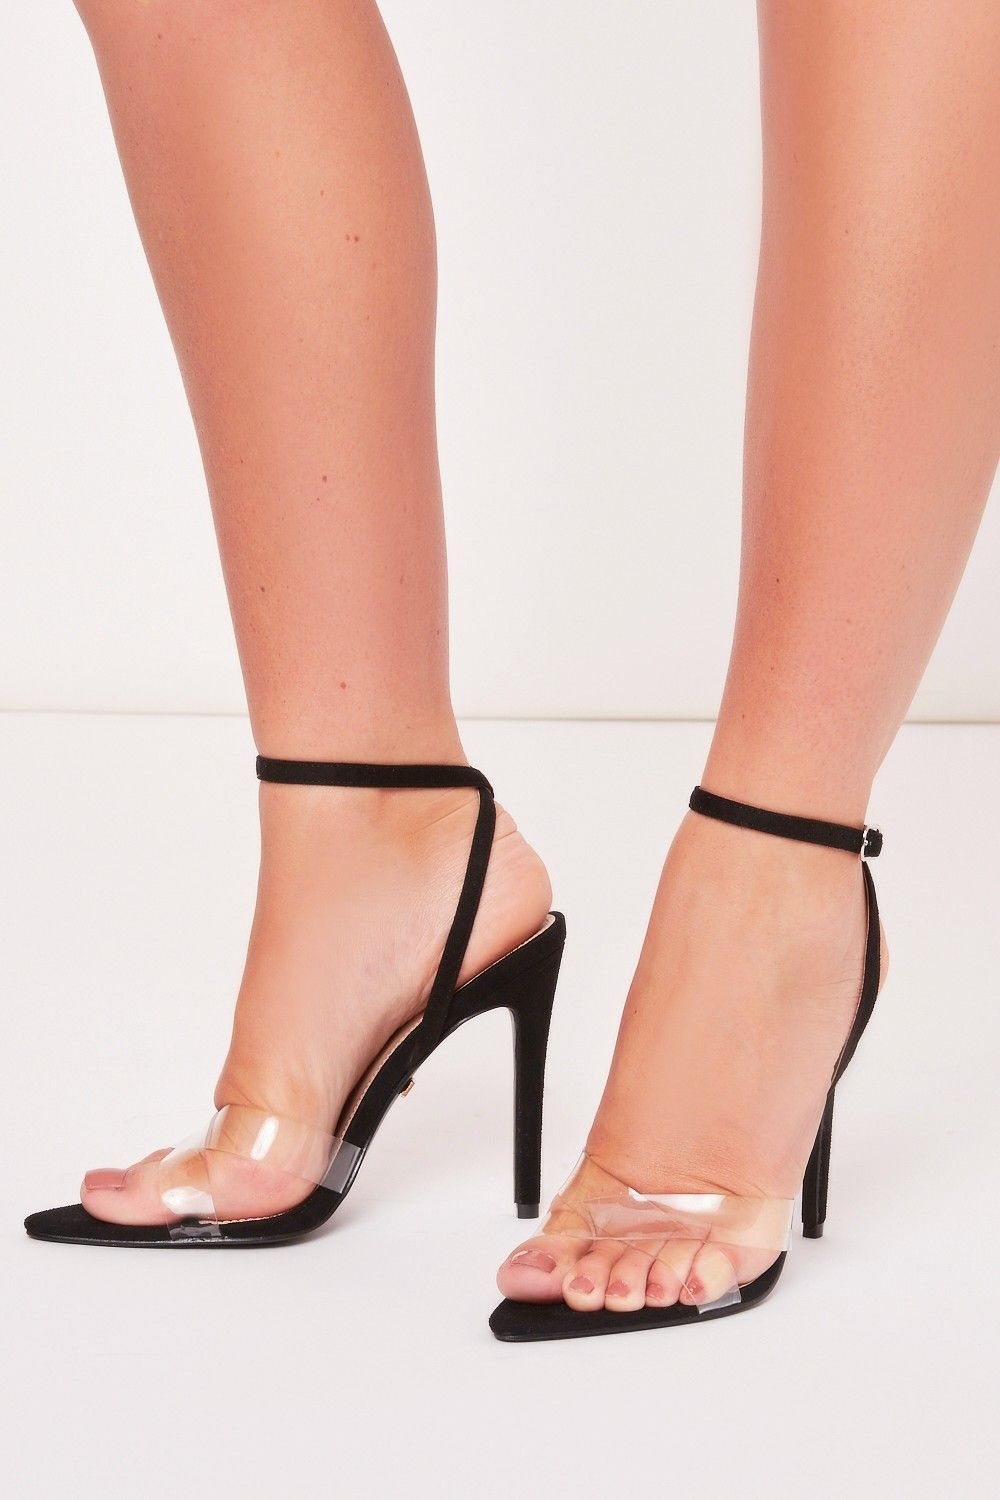 c7ff3a1580b Sofia Black Clear Pointed Barely There Heels | Shoes | Heels, Shoes ...